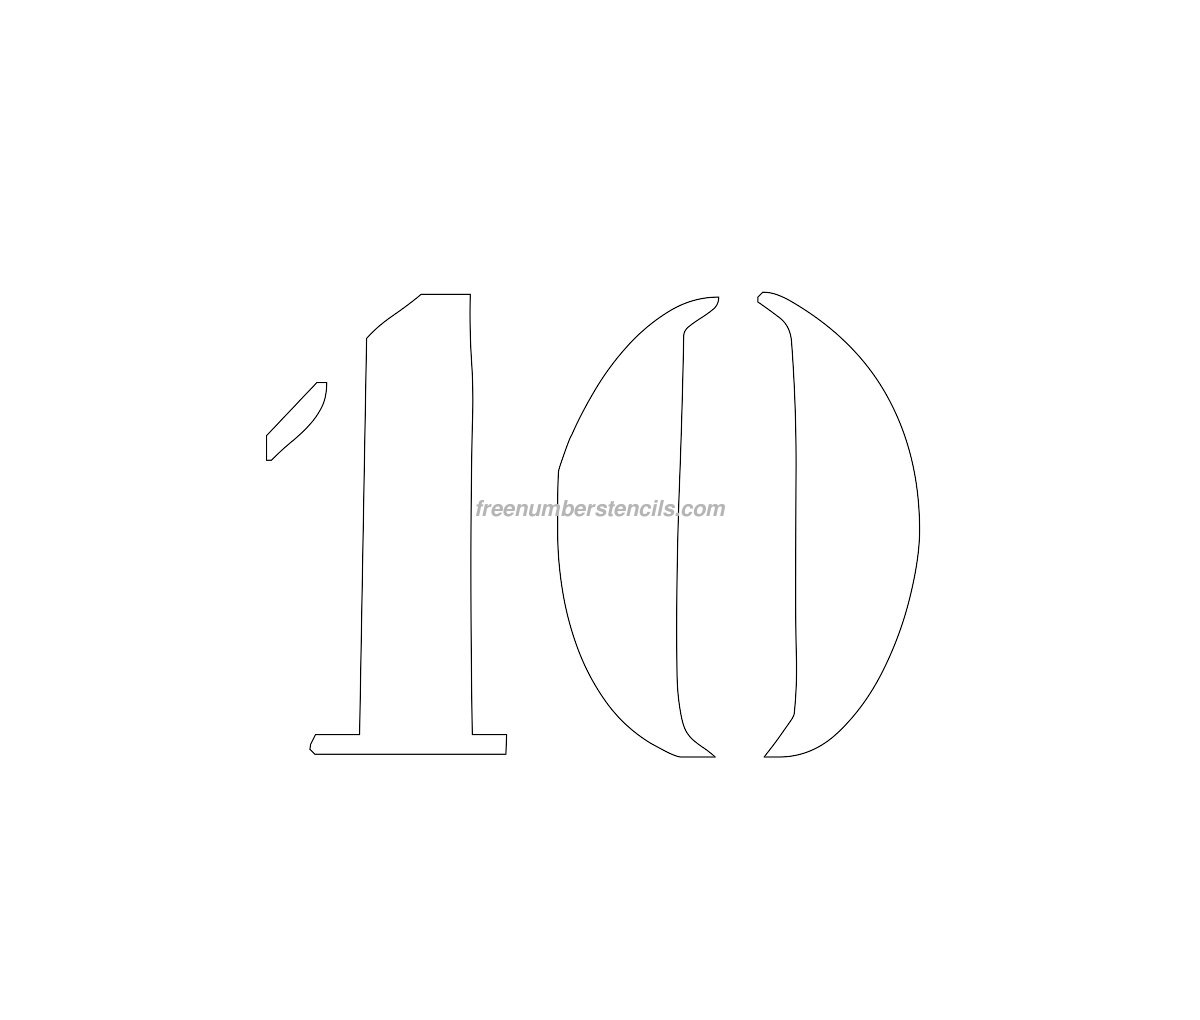 10: Free Curb Painting 10 Number Stencil